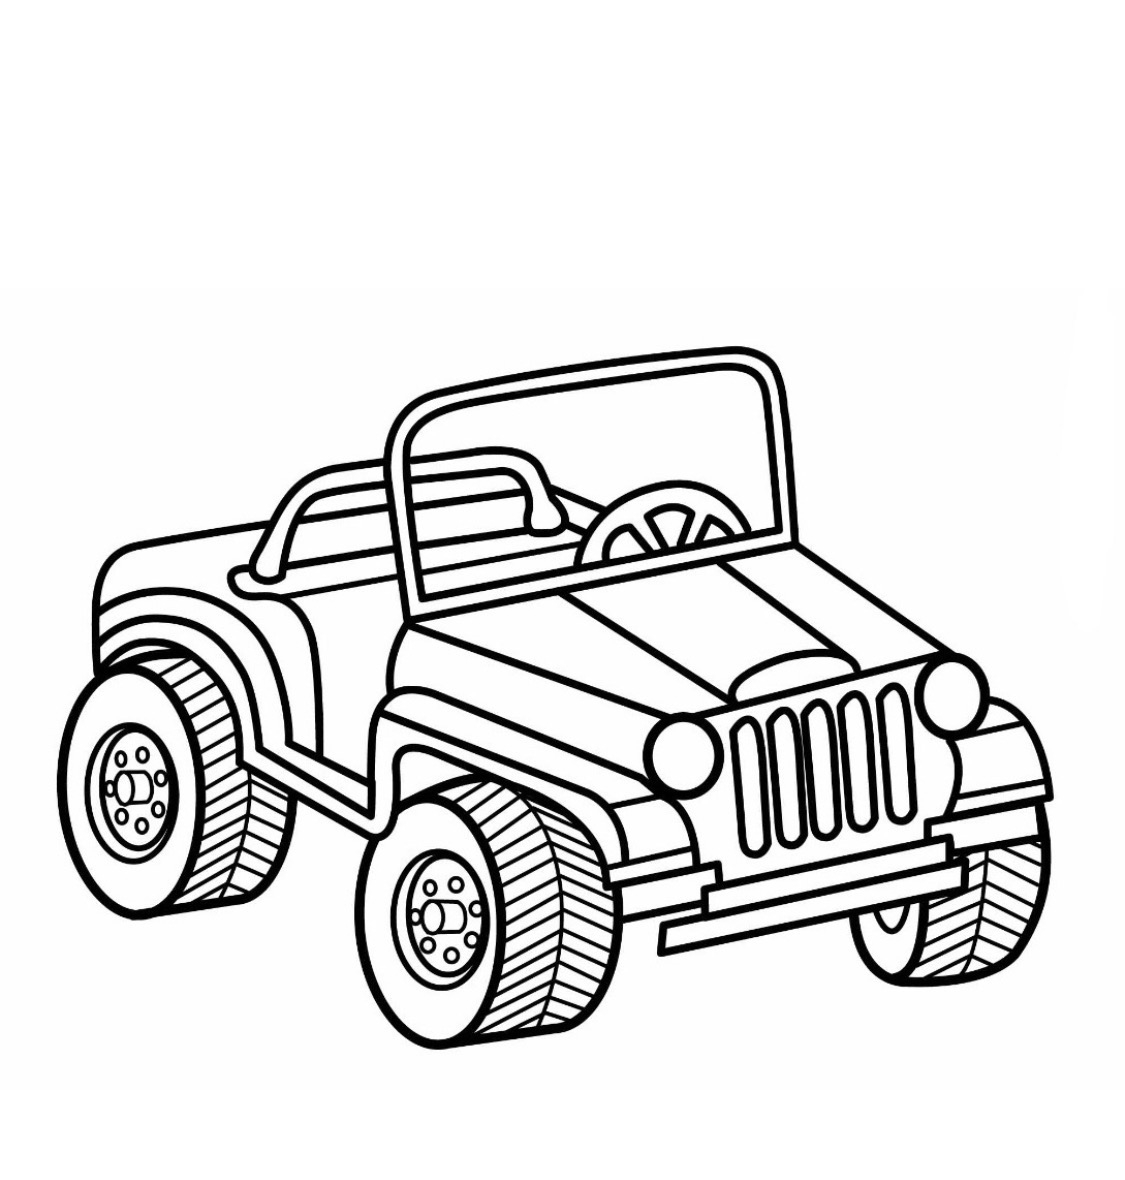 4 Wheeler Coloring Pages At Getcolorings